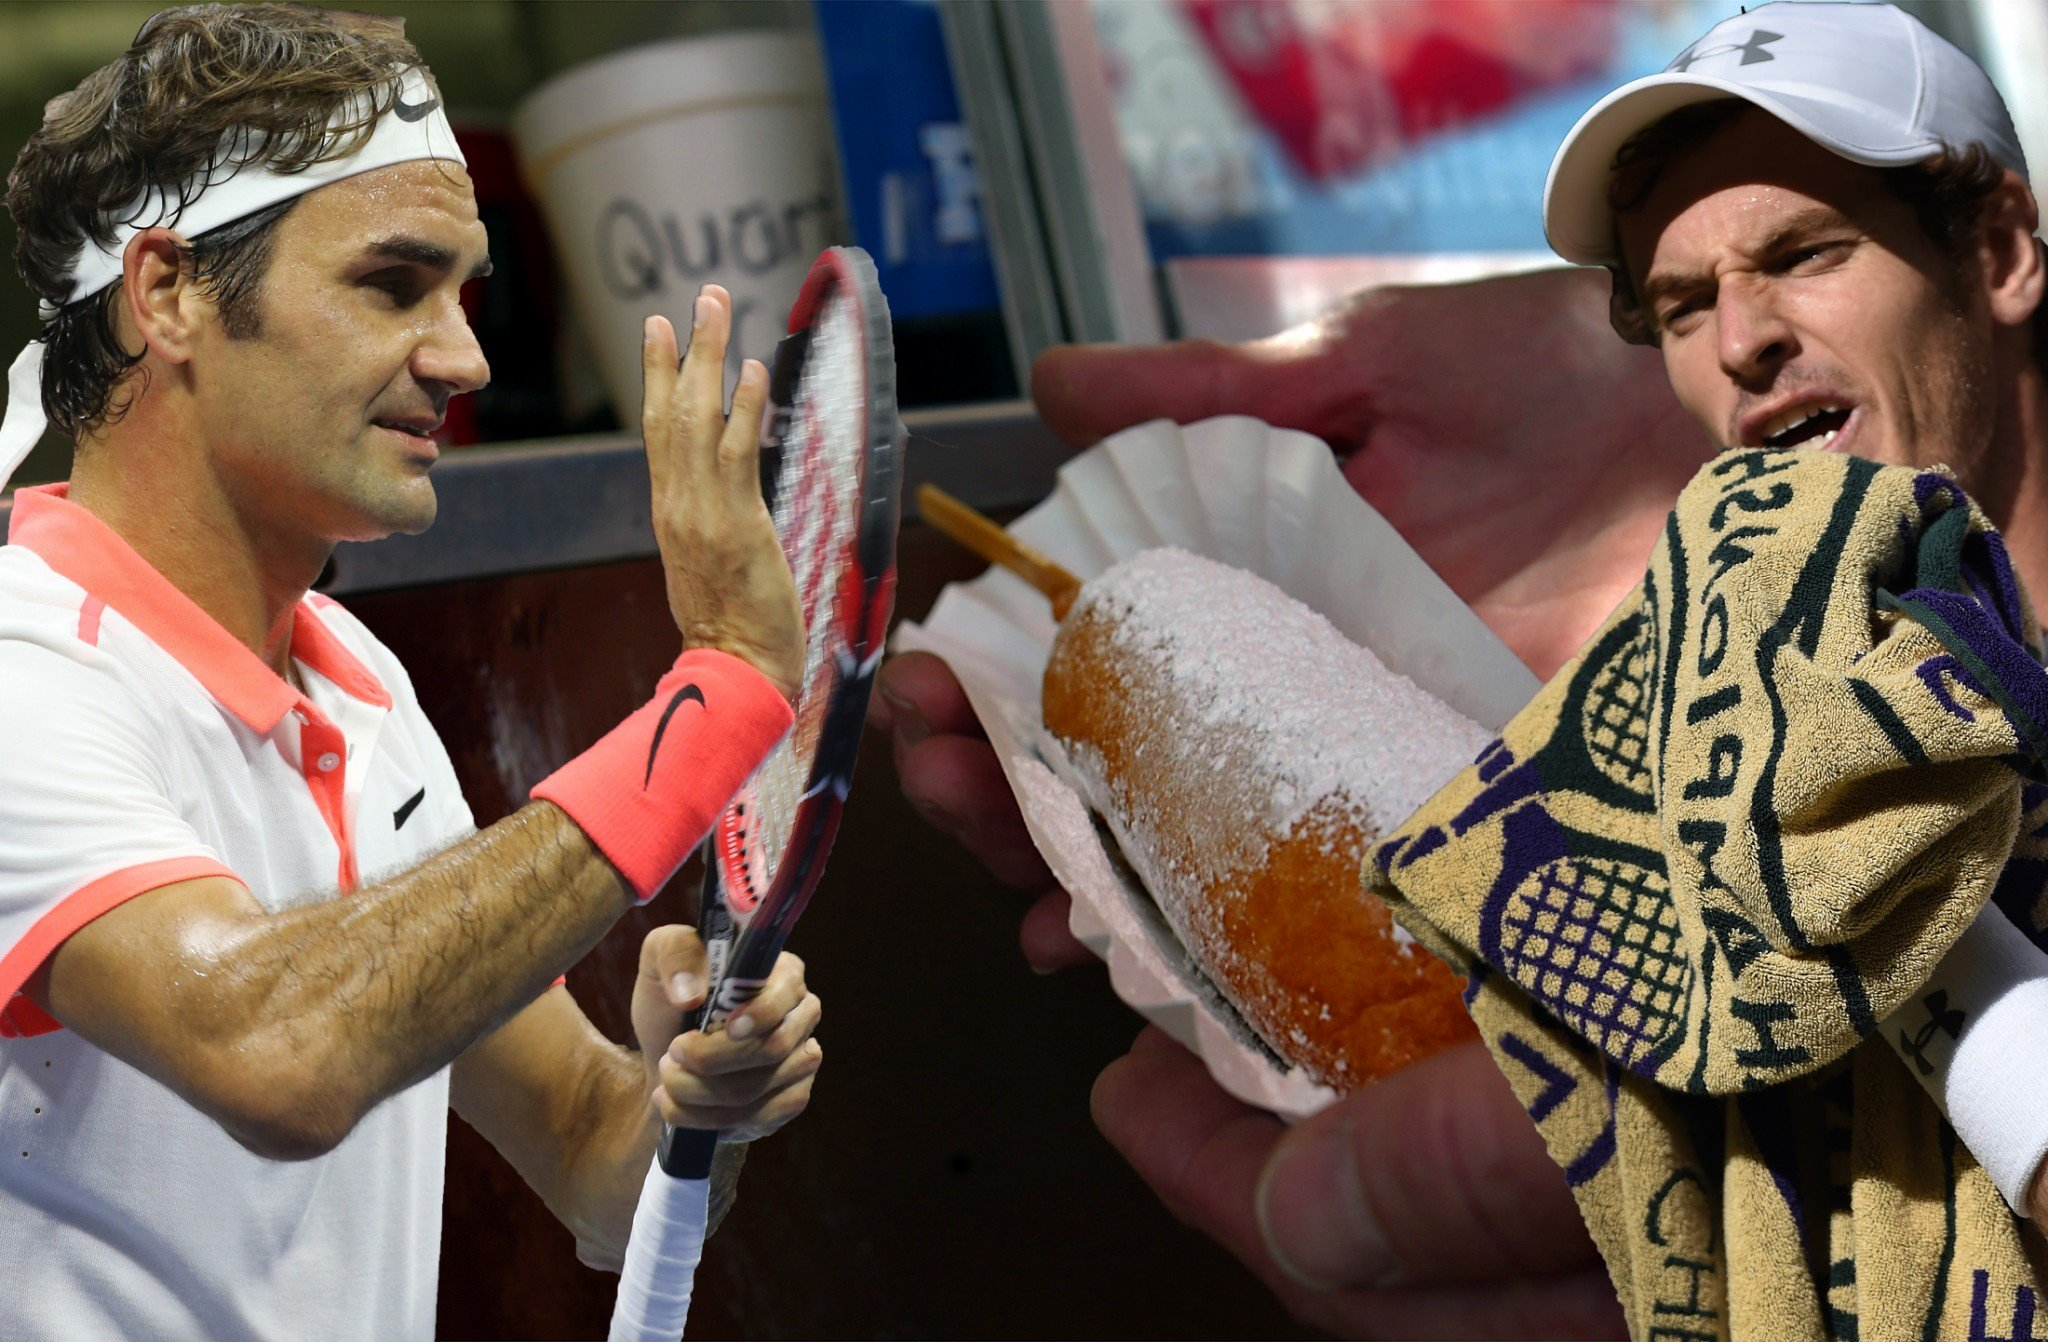 Andy Murray tried fried a fried Mars Bar once - and hated it